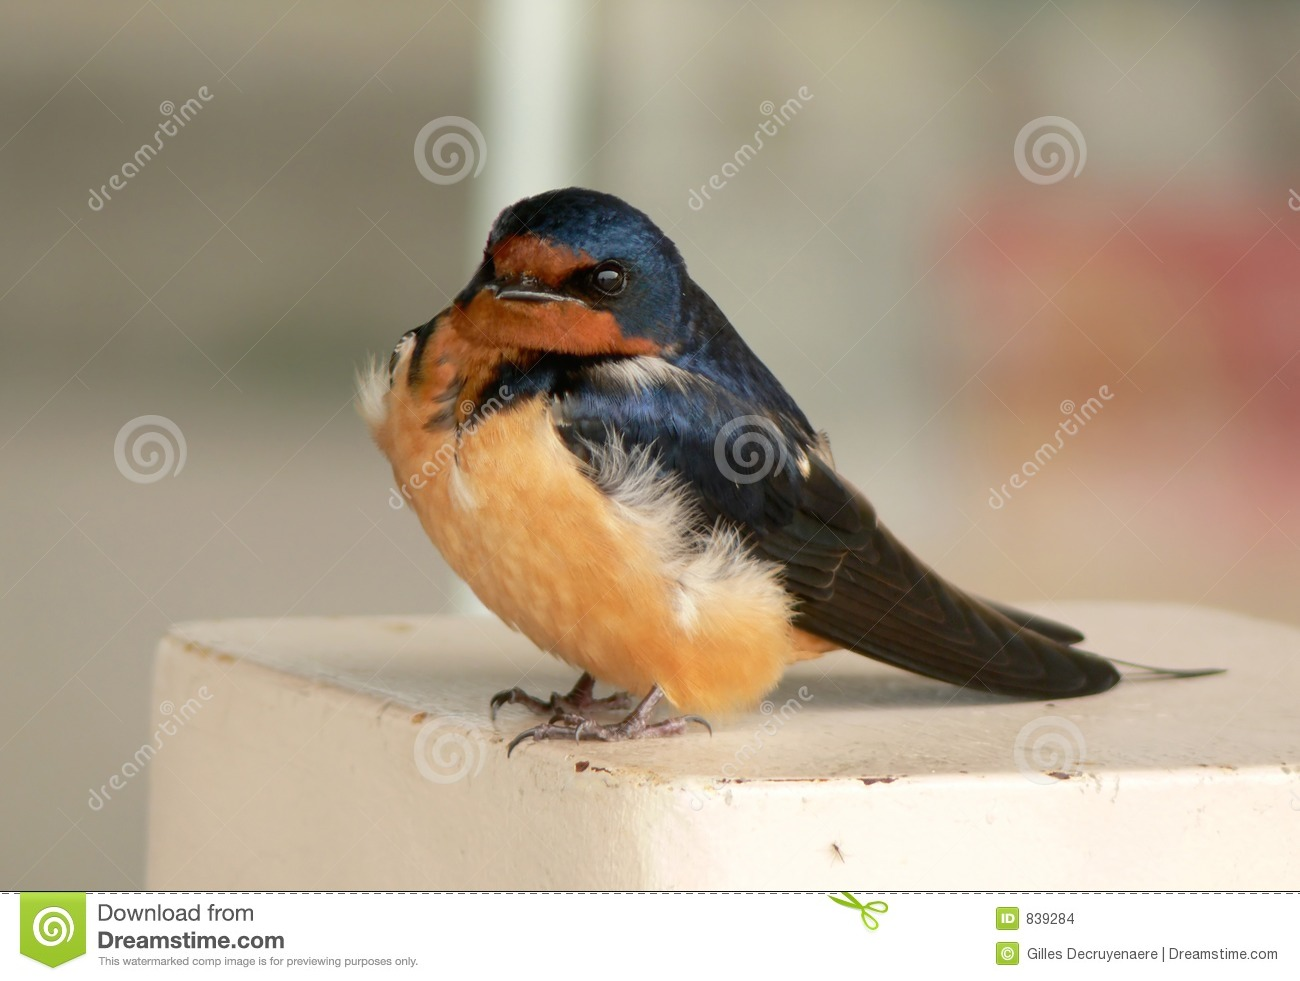 Swallow chick in spring.